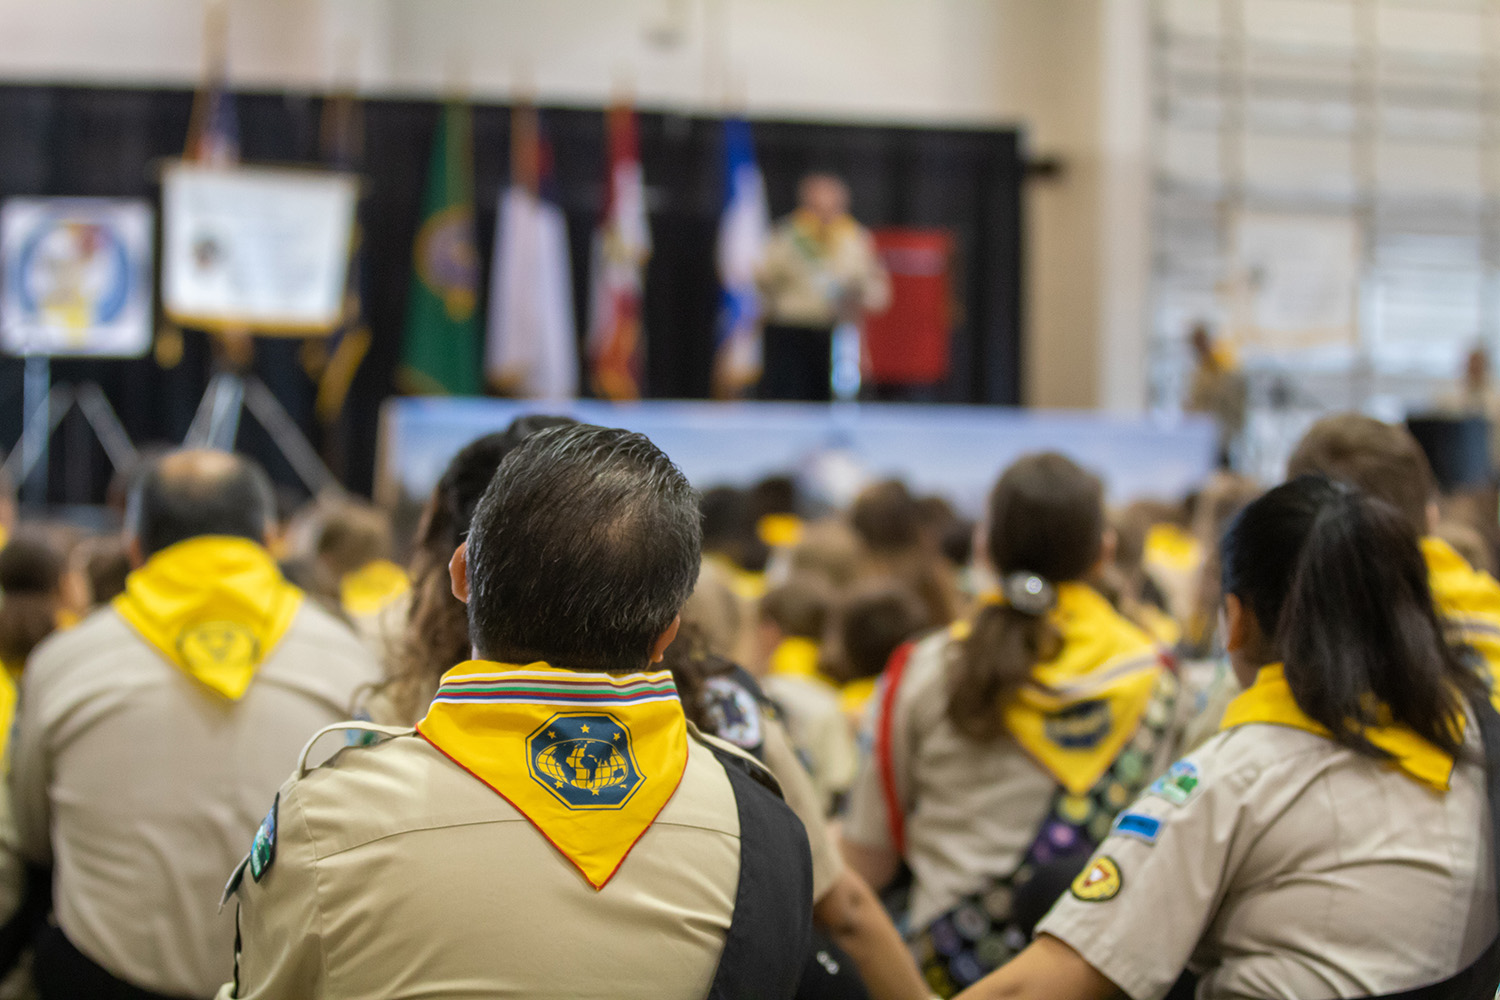 Pathfinders in uniforms setting on floor listing to person on stage